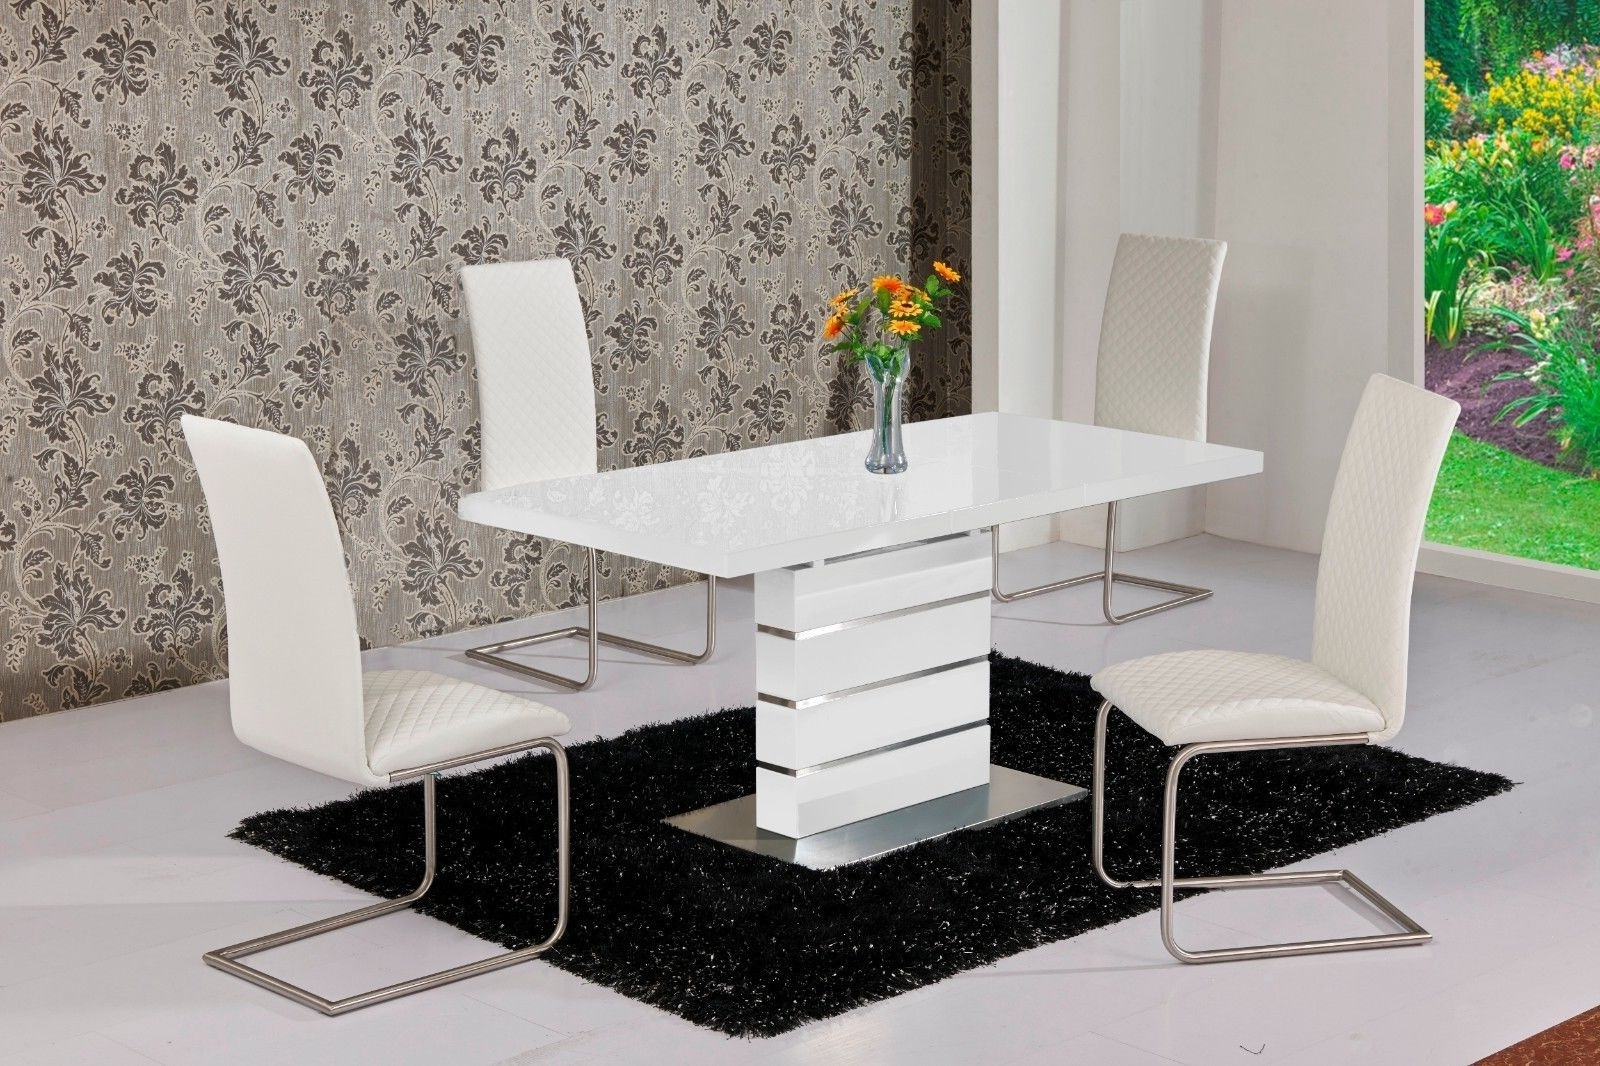 Newest Mace High Gloss Extending 120 160 Dining Table & Chair Set – White Inside White Dining Sets (View 15 of 25)